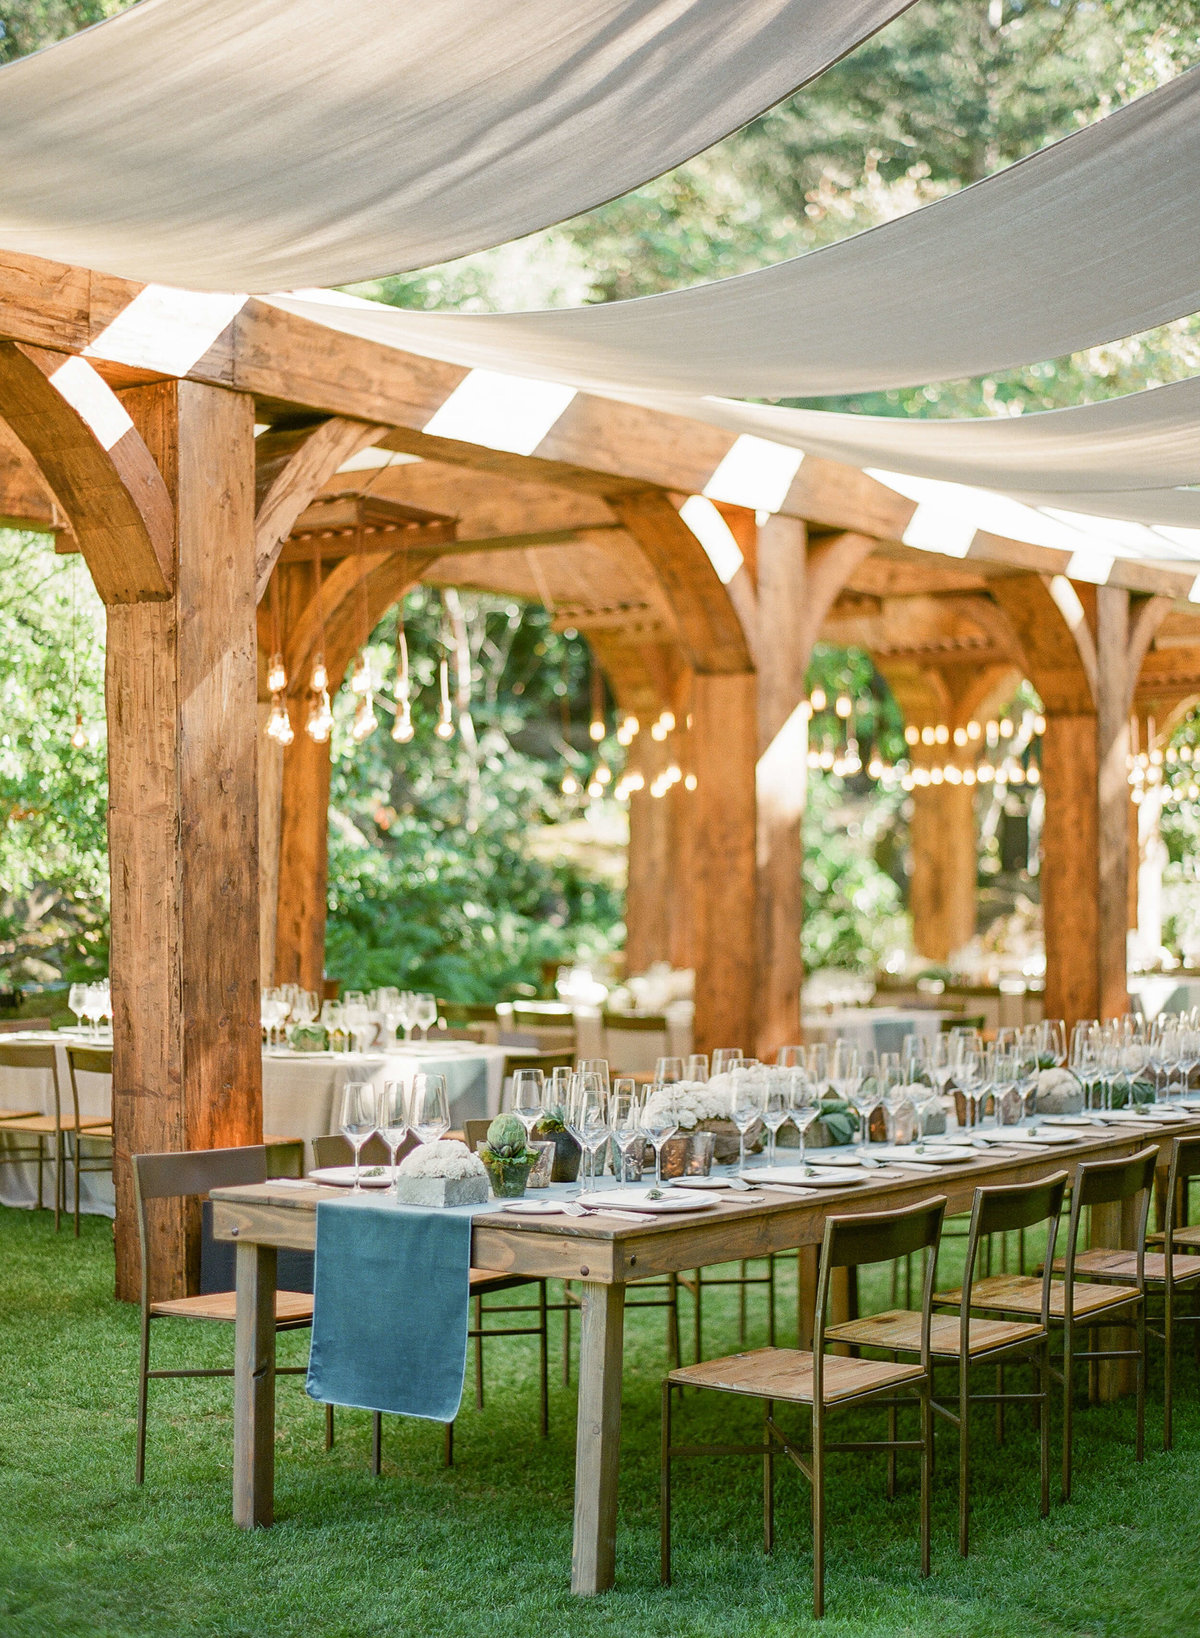 49-KTMerry-wedding-reception-outdoor-dining-NapaValley